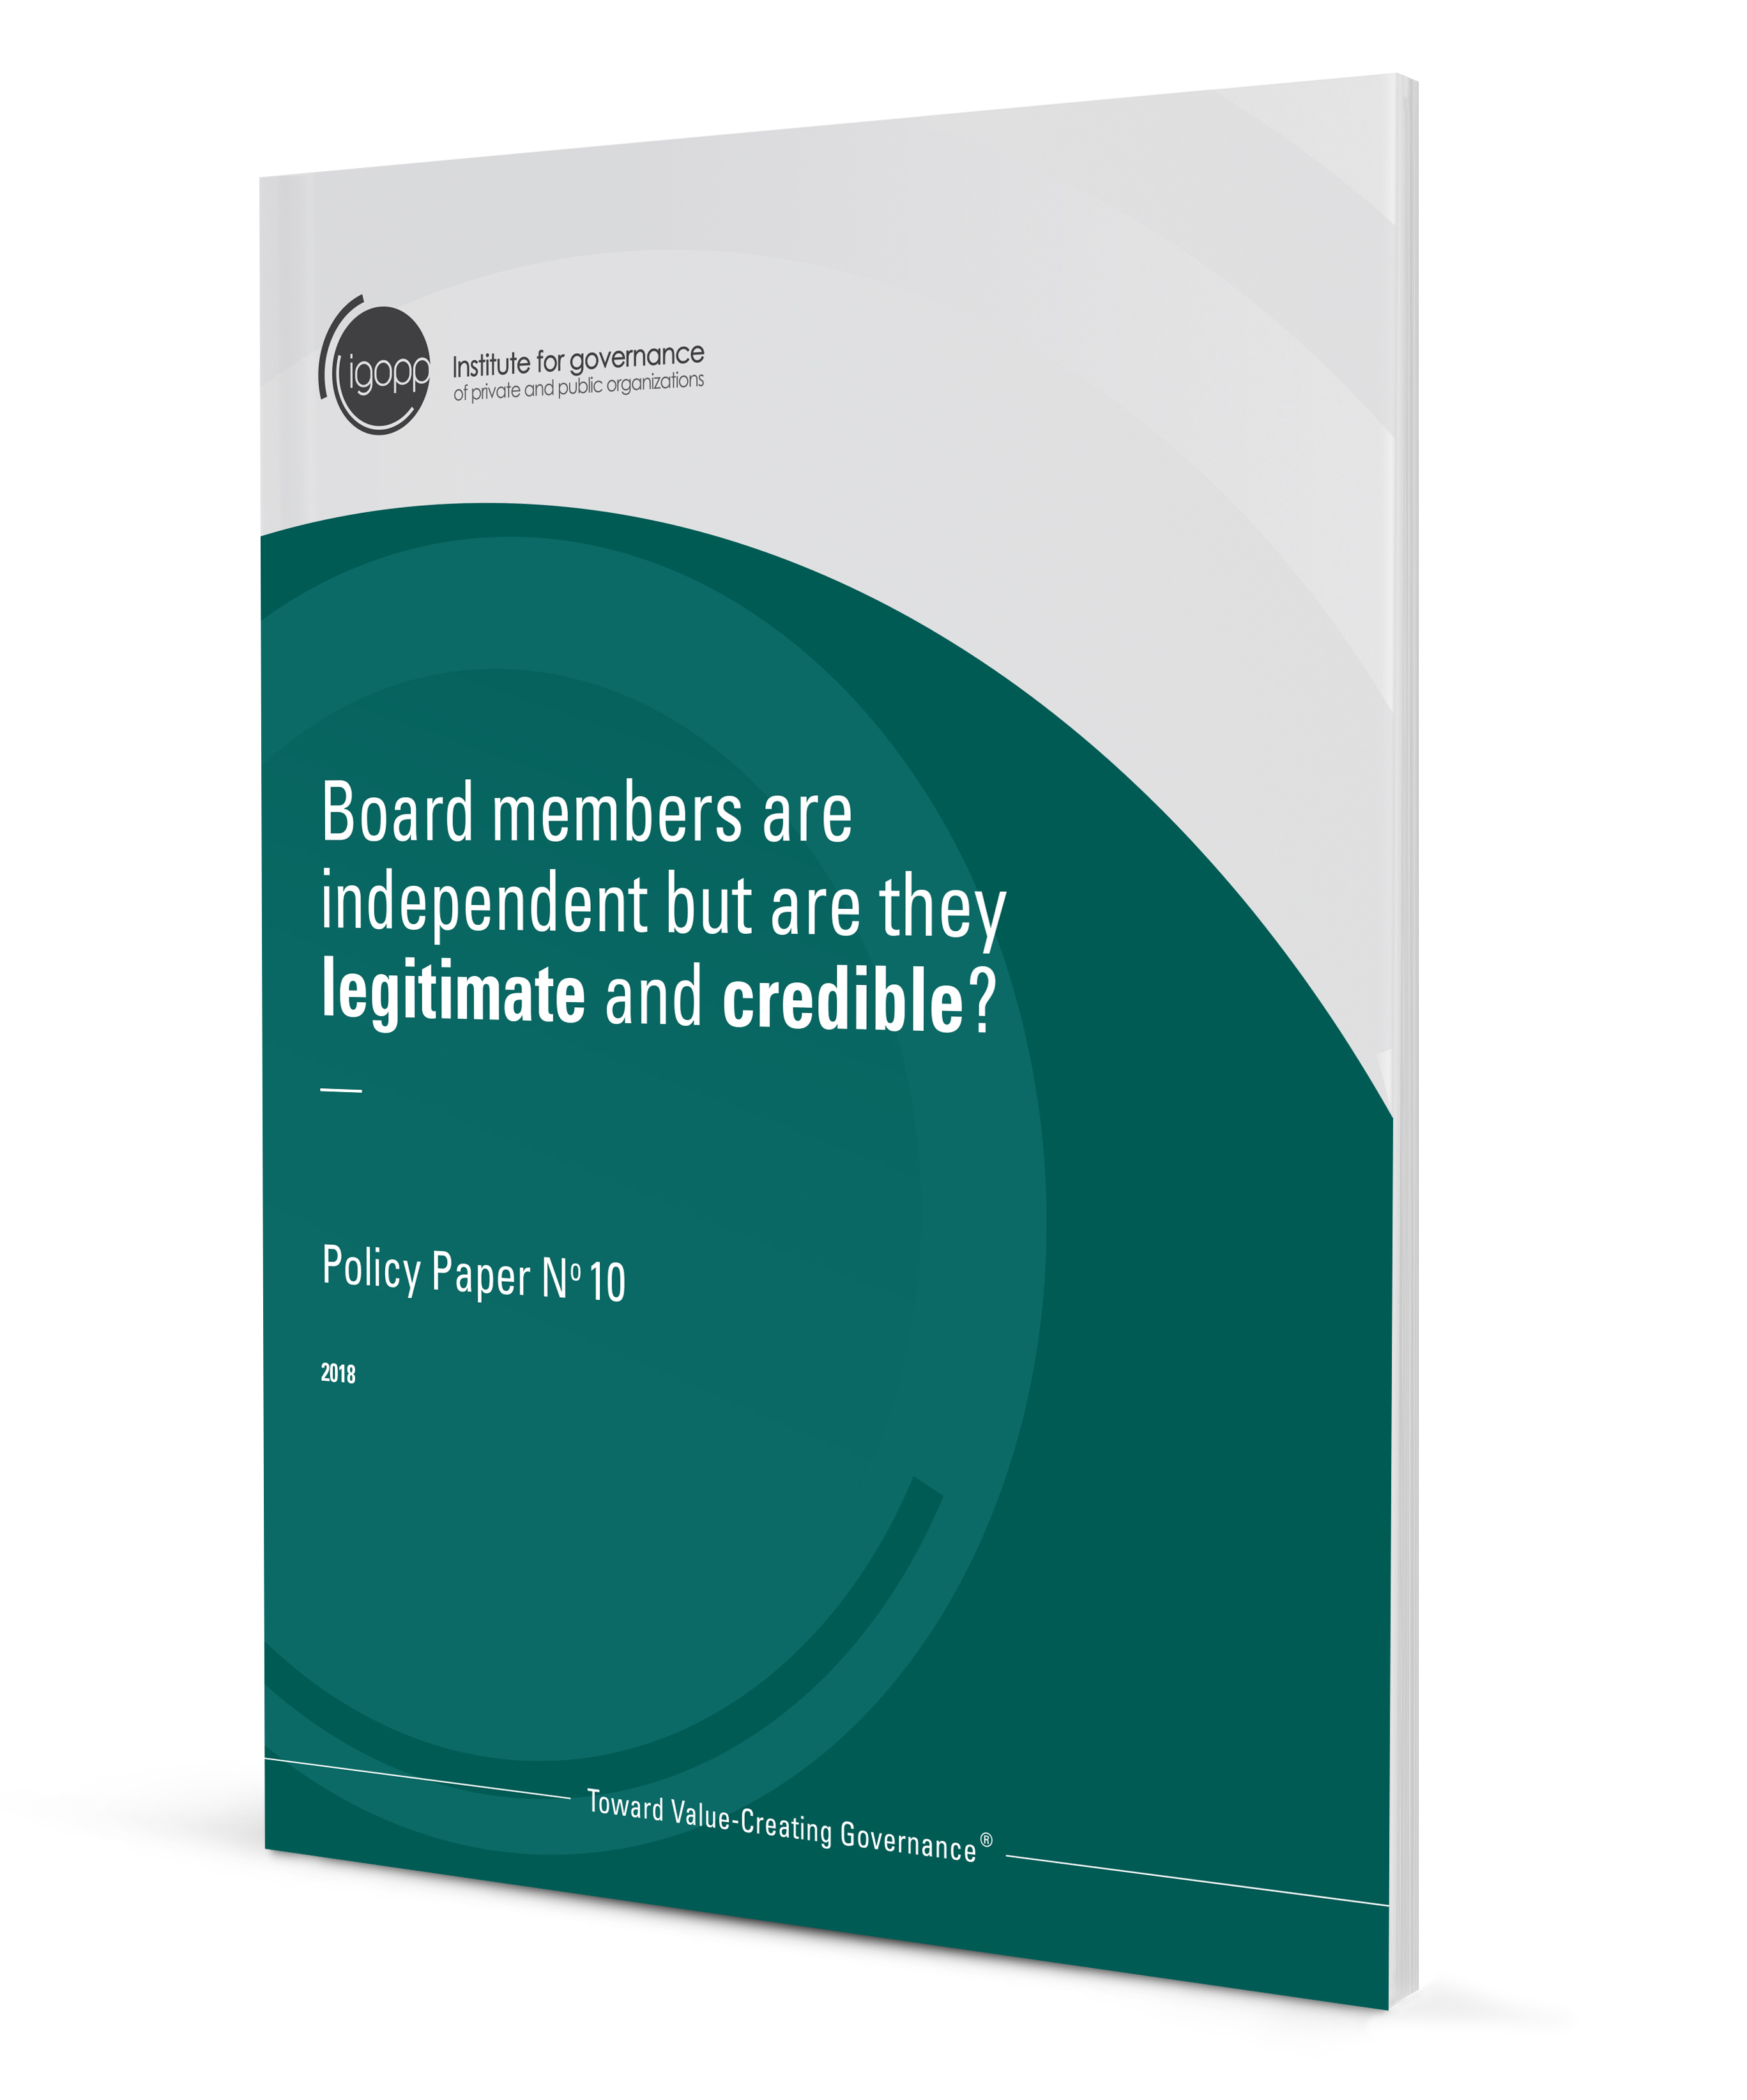 Board members are independent but are they legitimate and credible?